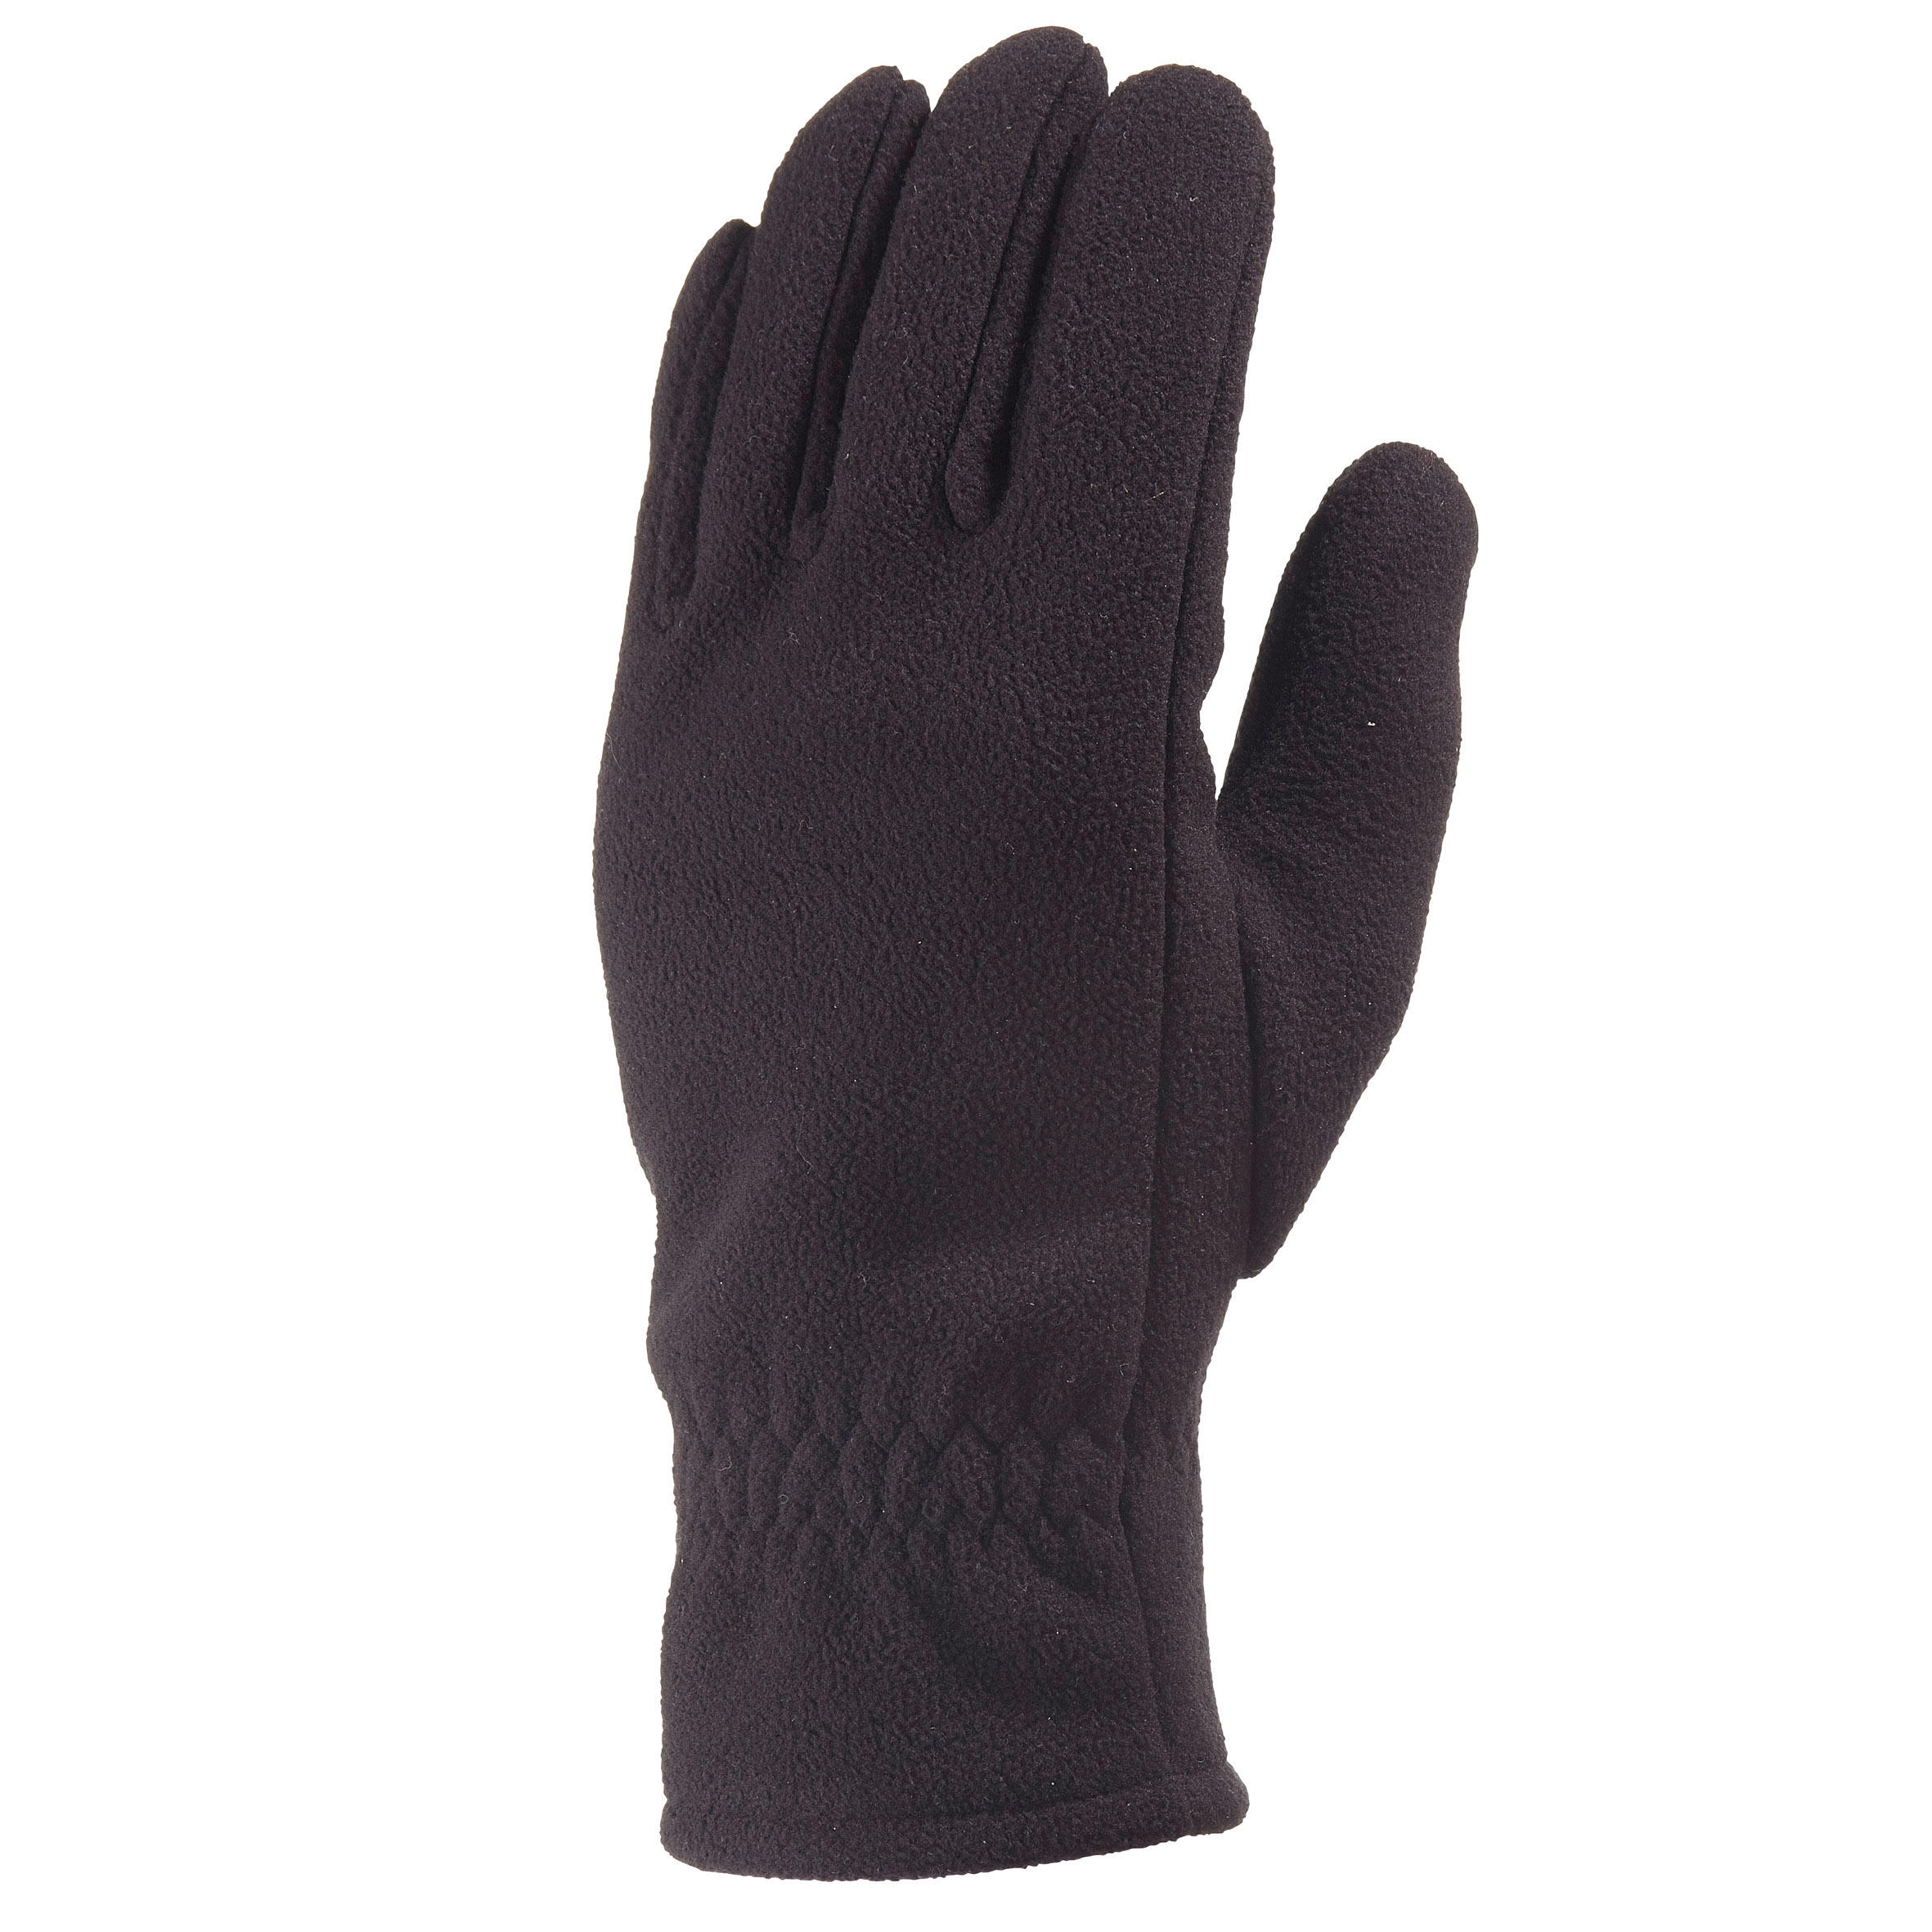 Travel 500 Trekking Gloves - Black